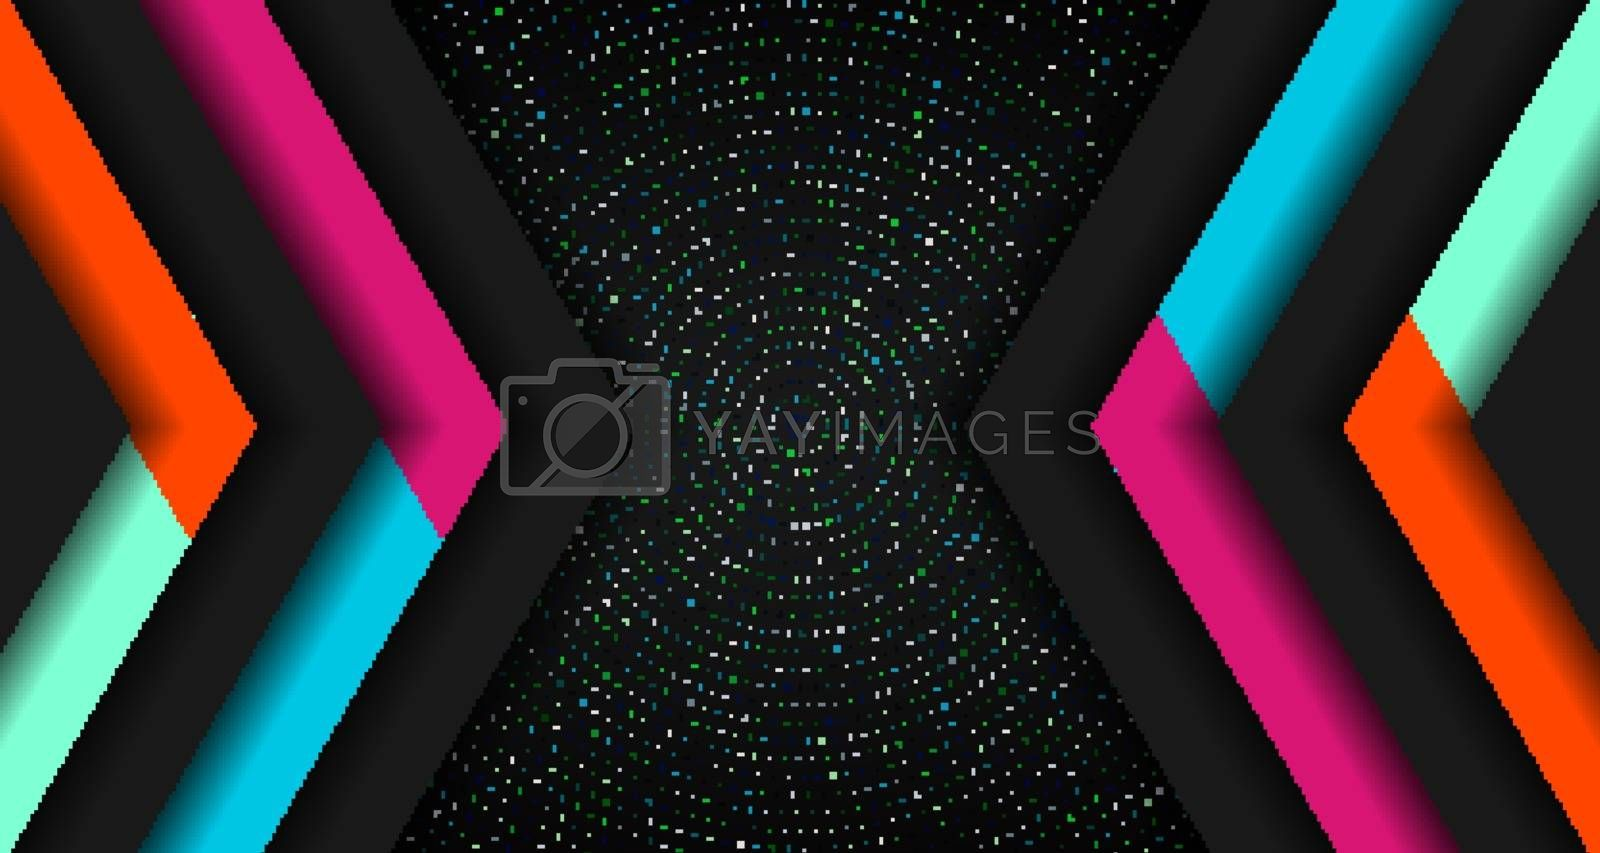 Abstract vibrant color triangle geometric overlap layer on glowing particles dots black background technology concept. Arrow shape direction colorful template for cover brochure, poster, banner web, flyer, presentation, etc. Vector illustration